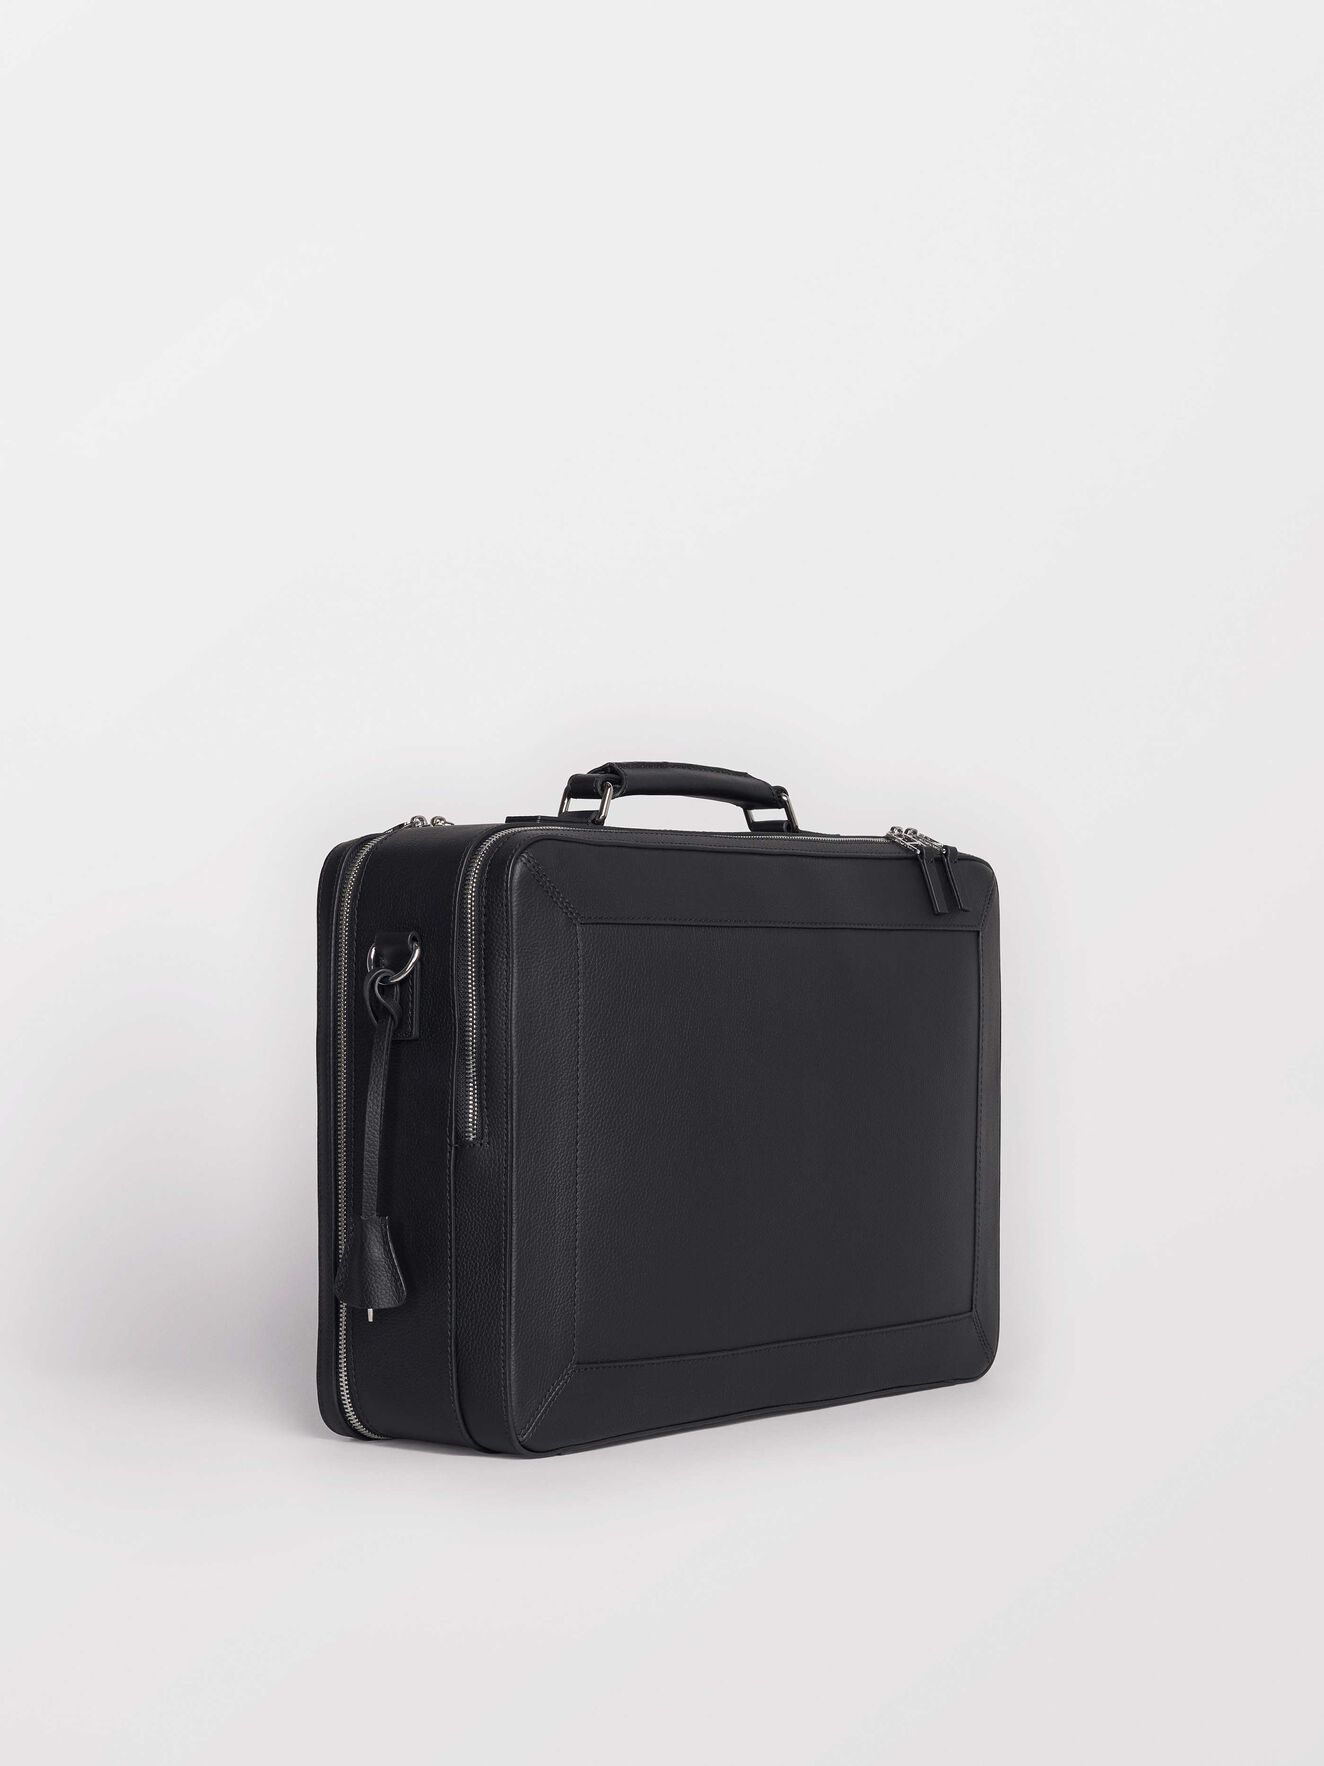 Beaumont Bag in Black from Tiger of Sweden